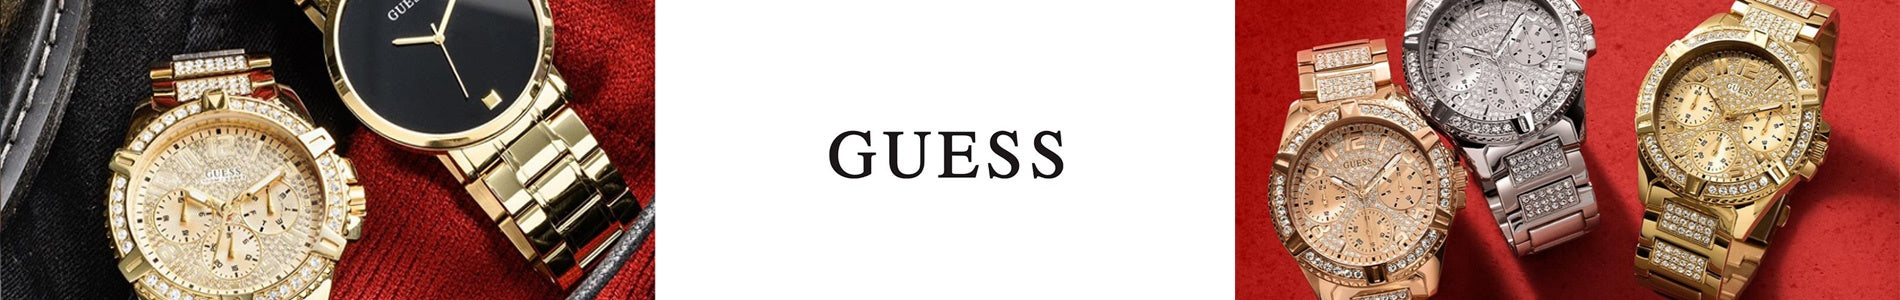 GUESS Watches for Men and Women   Time Watch Specialists